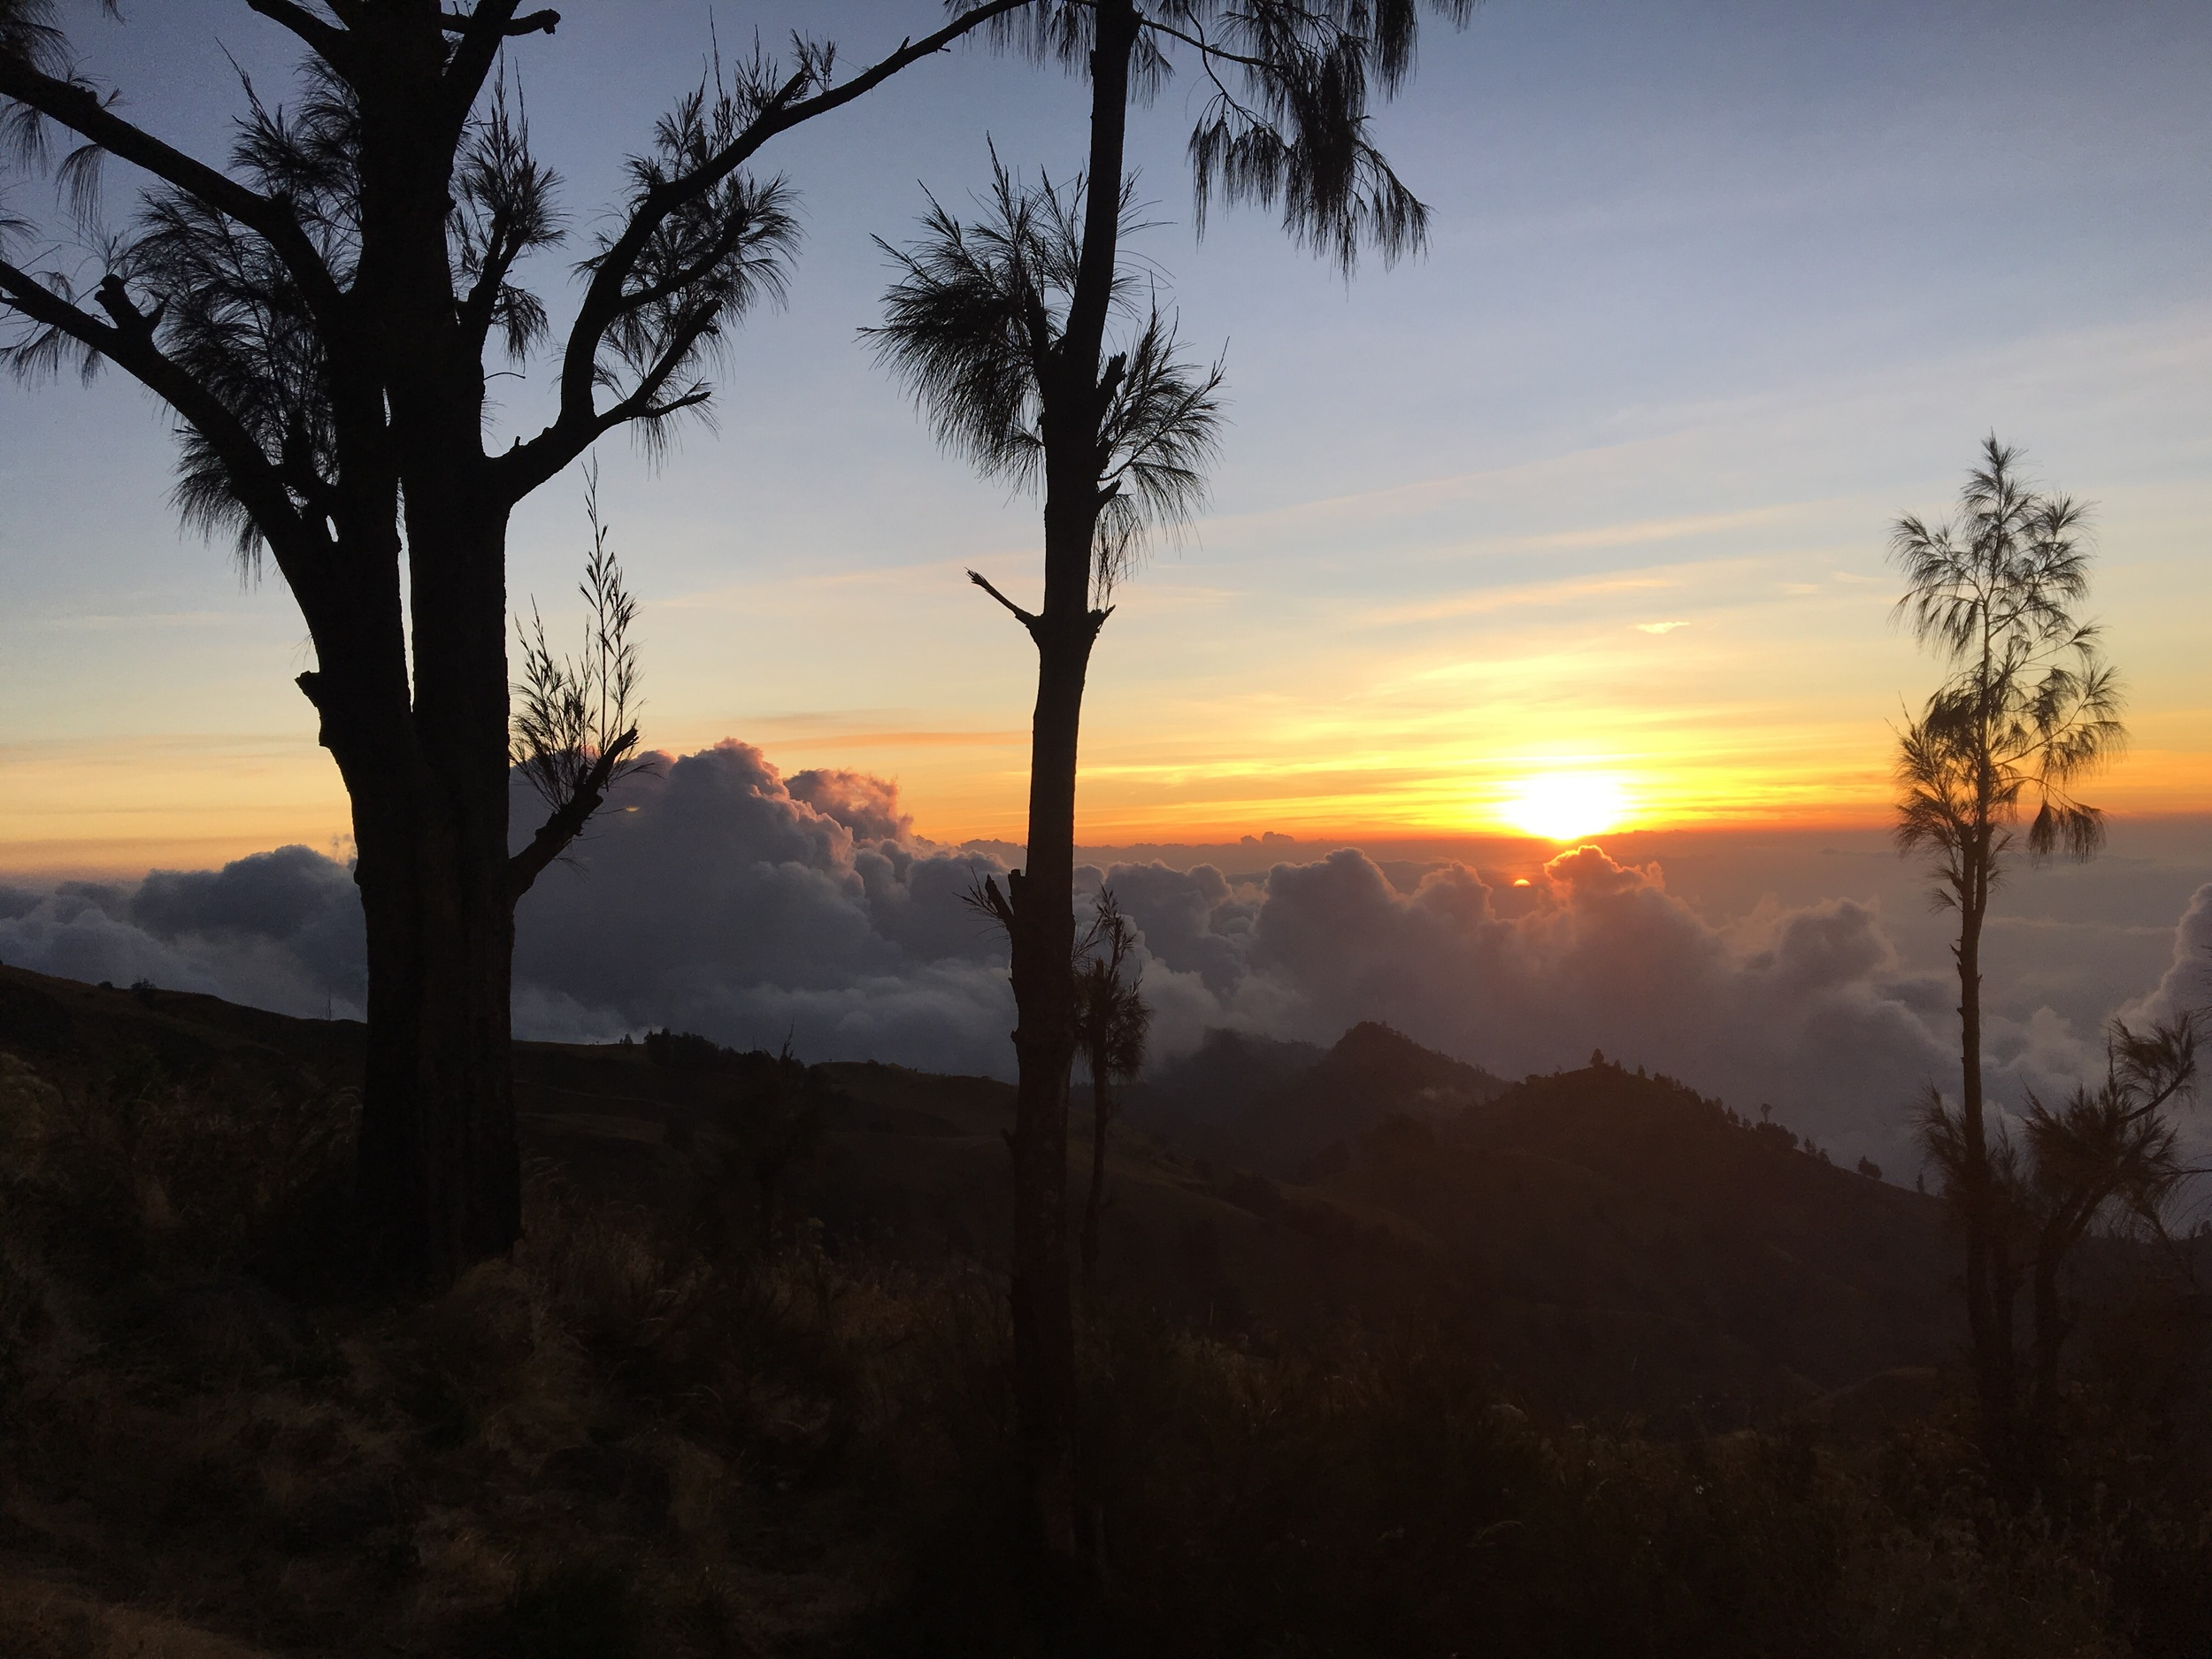 Sunset on the first night up on Rinjani